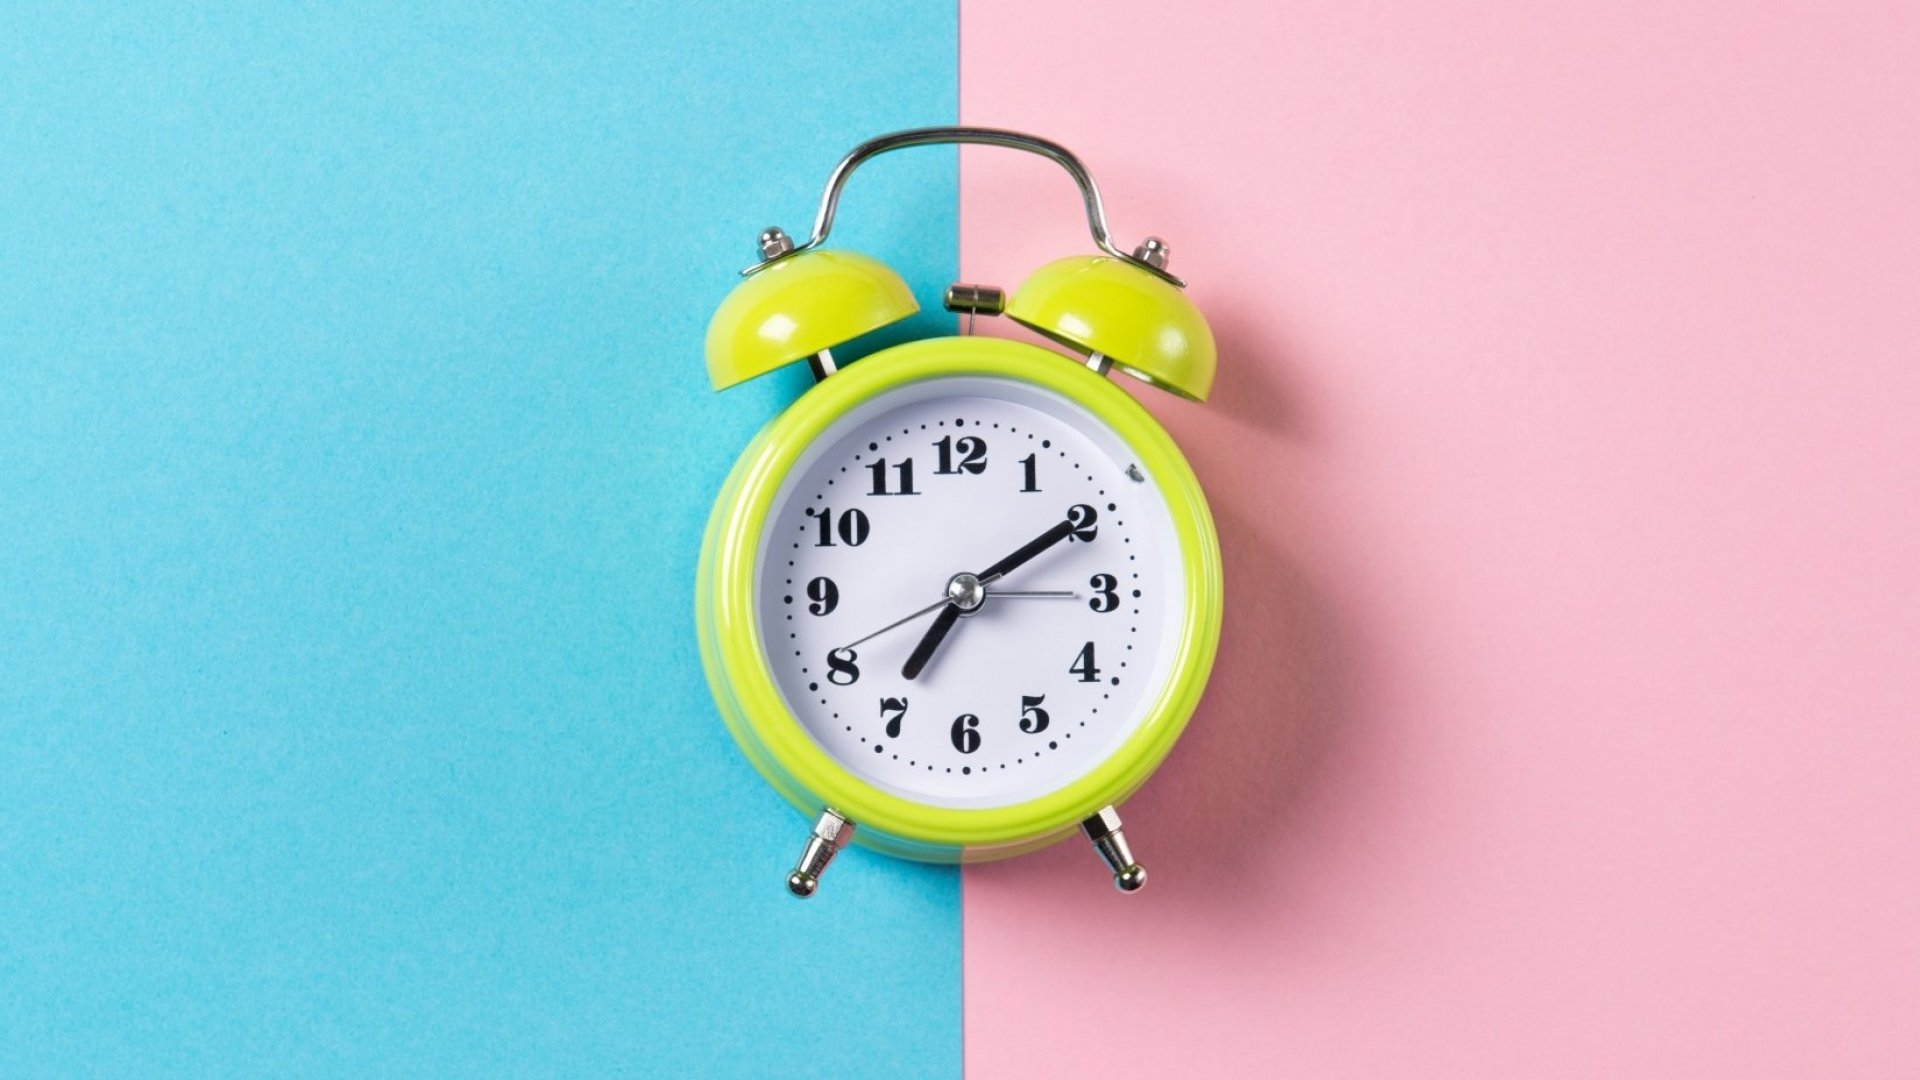 10 Small Changes to Your Daily Routine That Will 10x Your Productivity